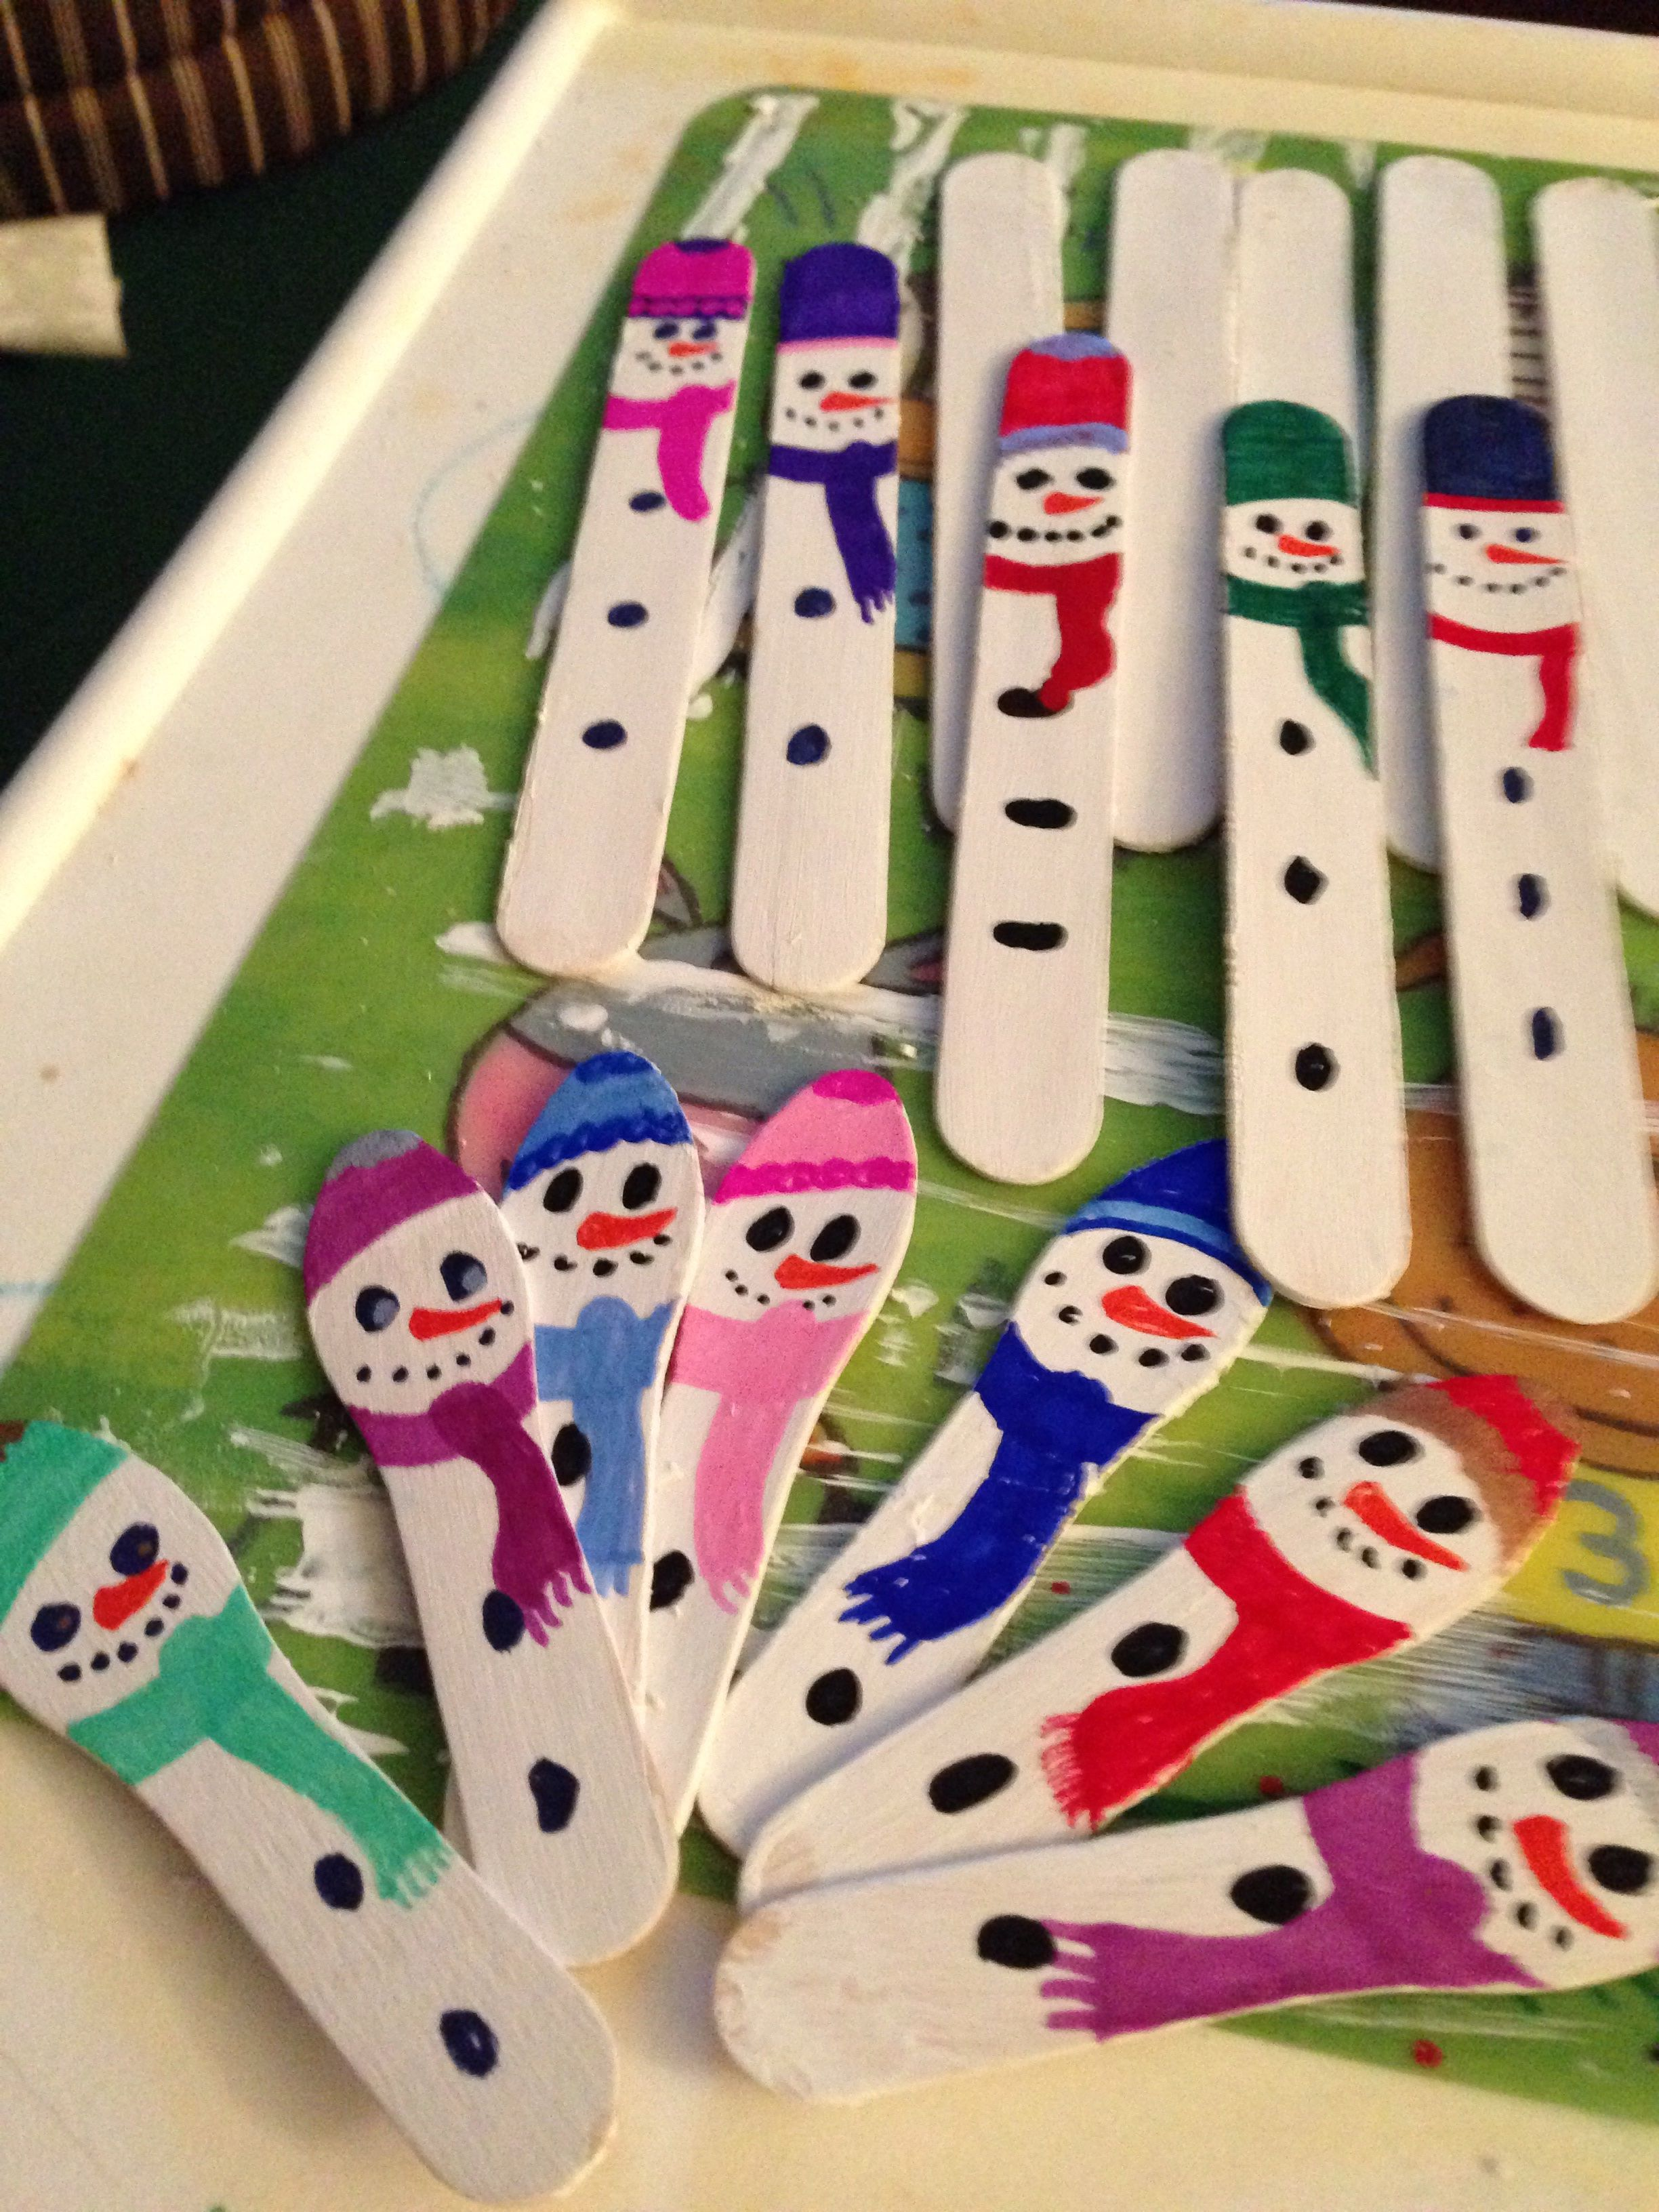 Snowmen Made From Wooden Sticks And Spoons